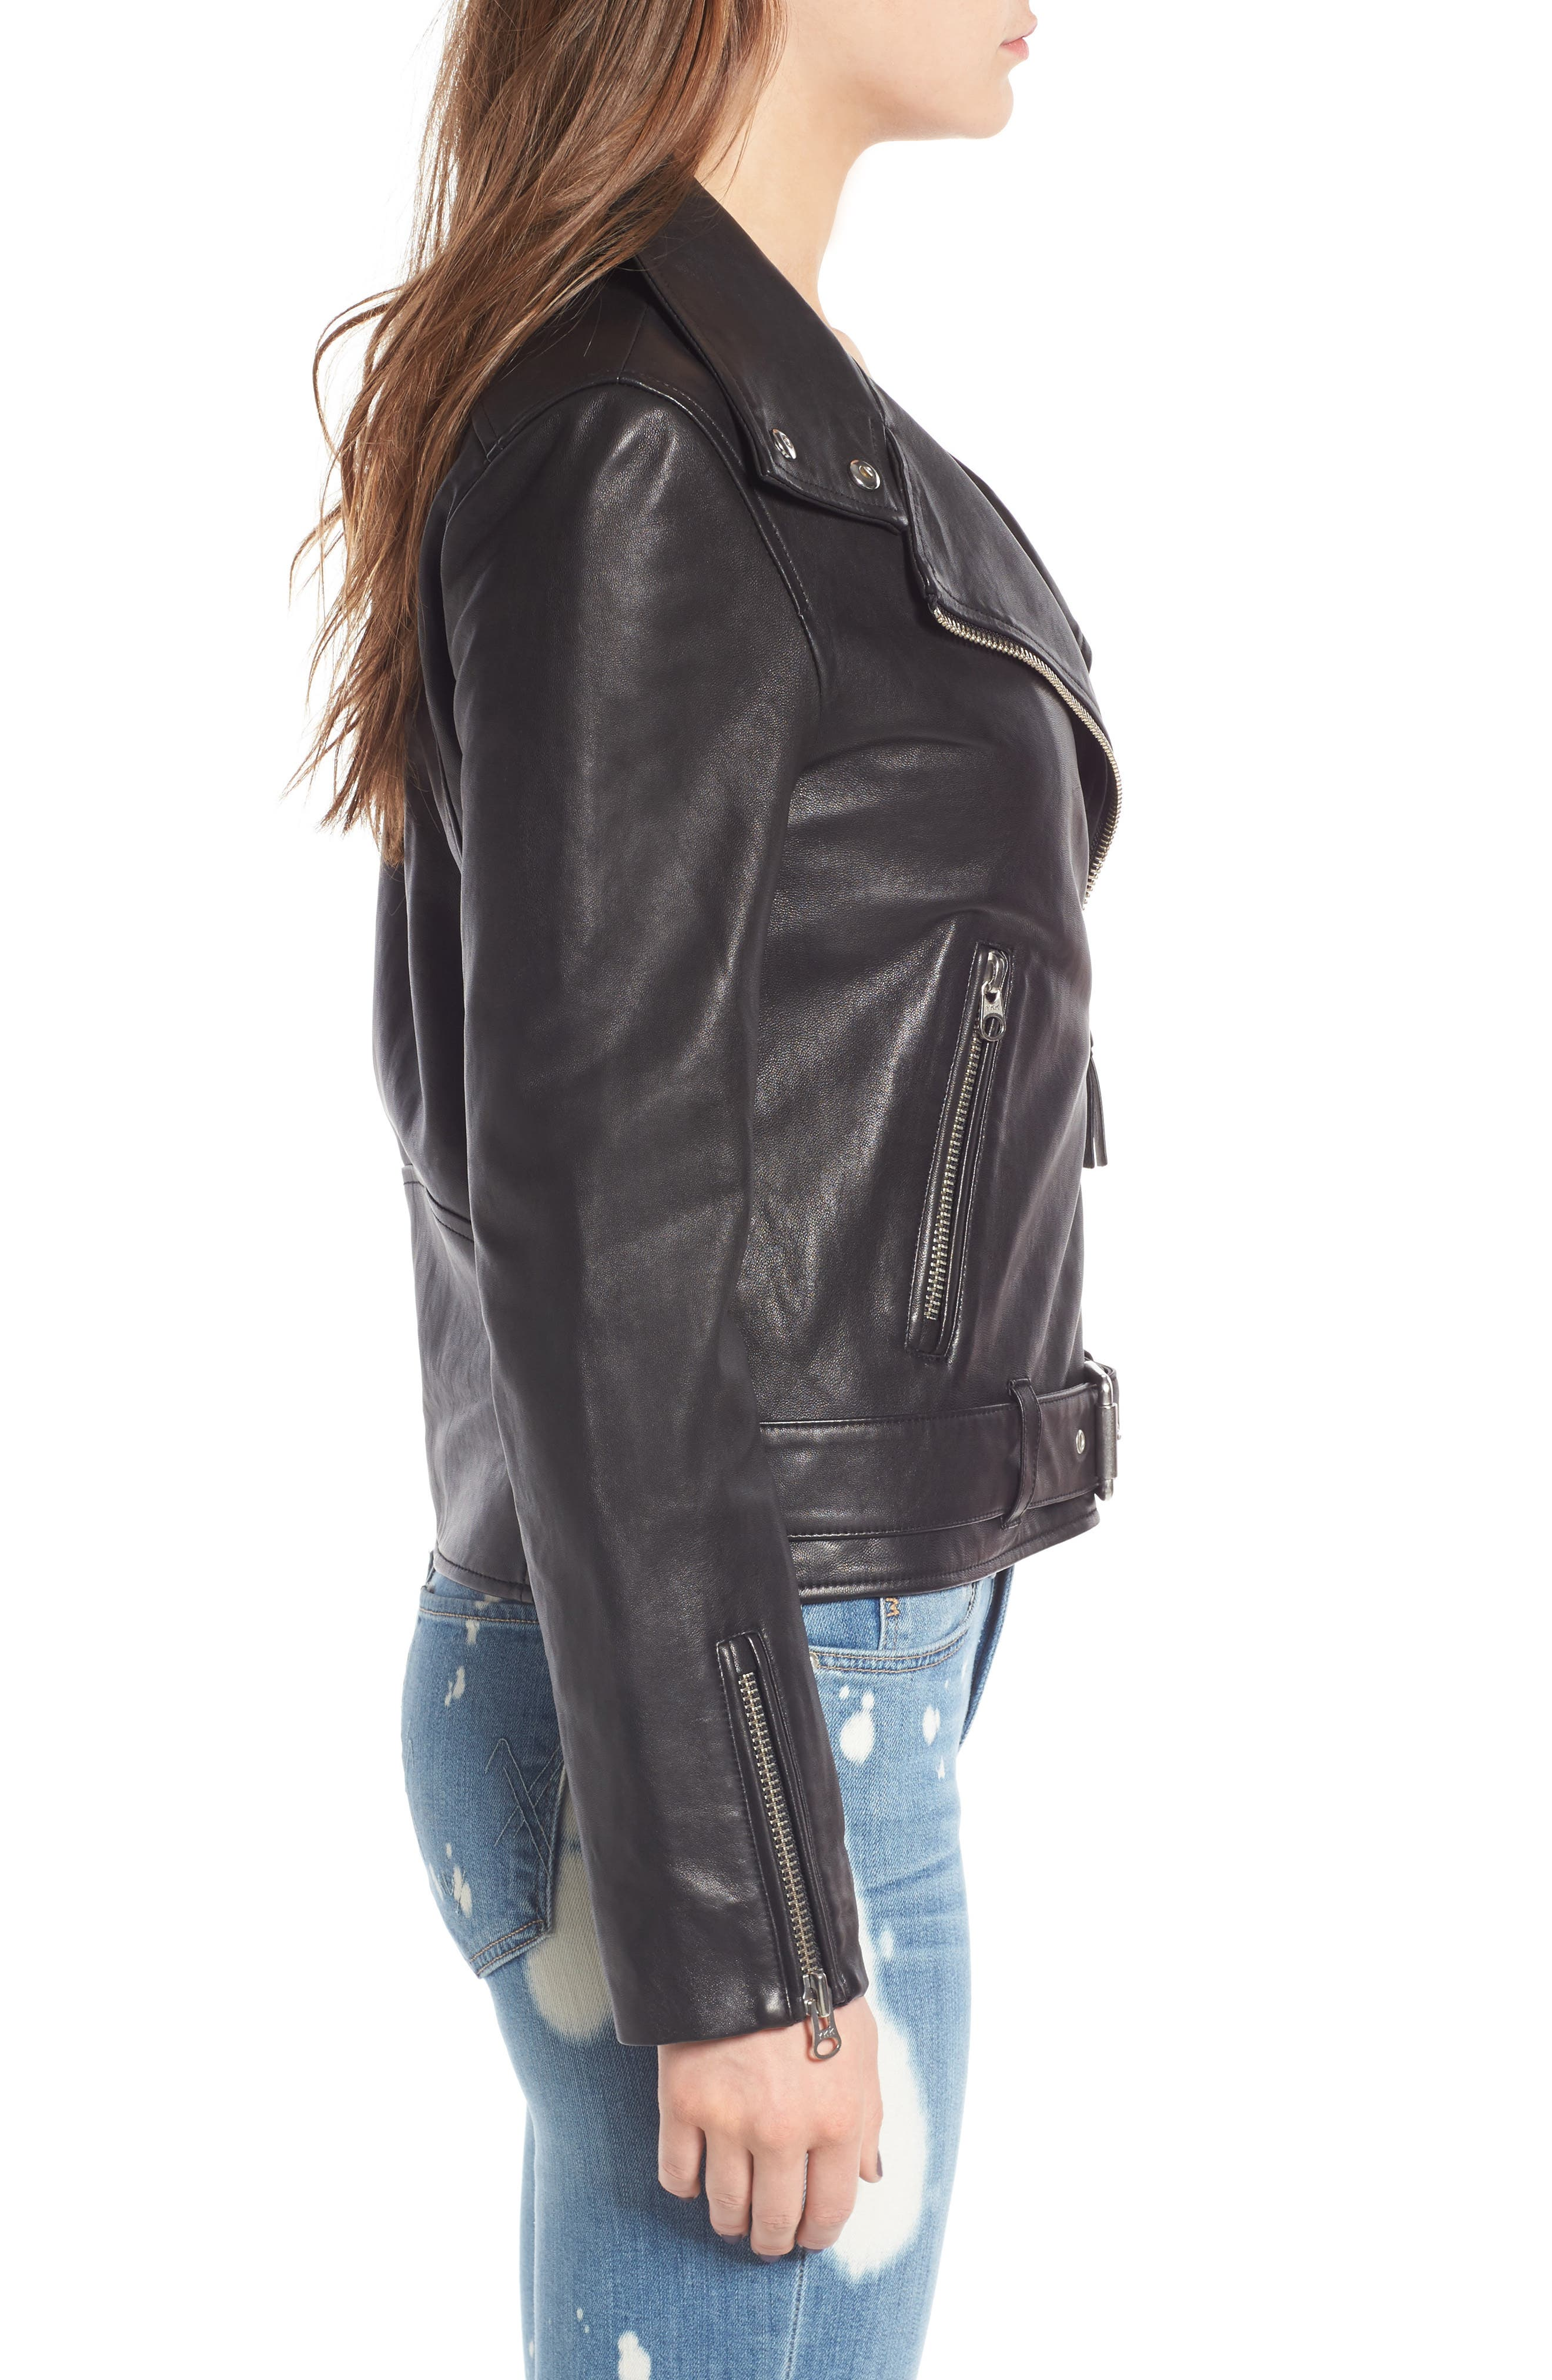 Miela-N Belted Leather Moto Jacket,                             Alternate thumbnail 3, color,                             001